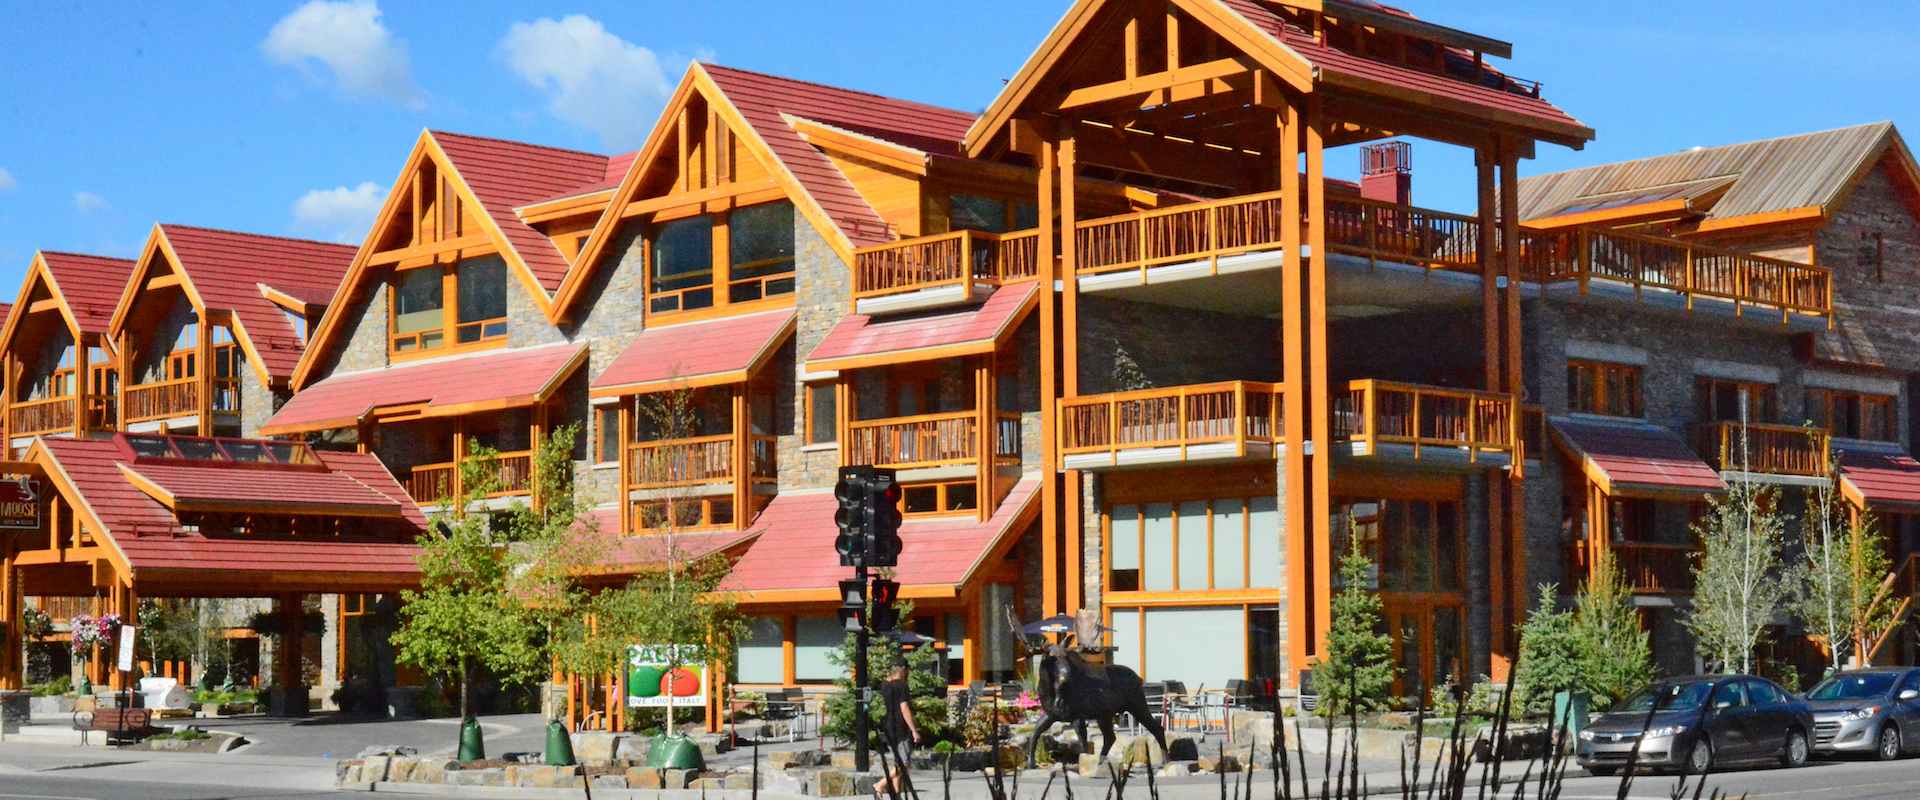 Moose Hotel and Suites Exterior in Summer in Banff, Canadian Rockies